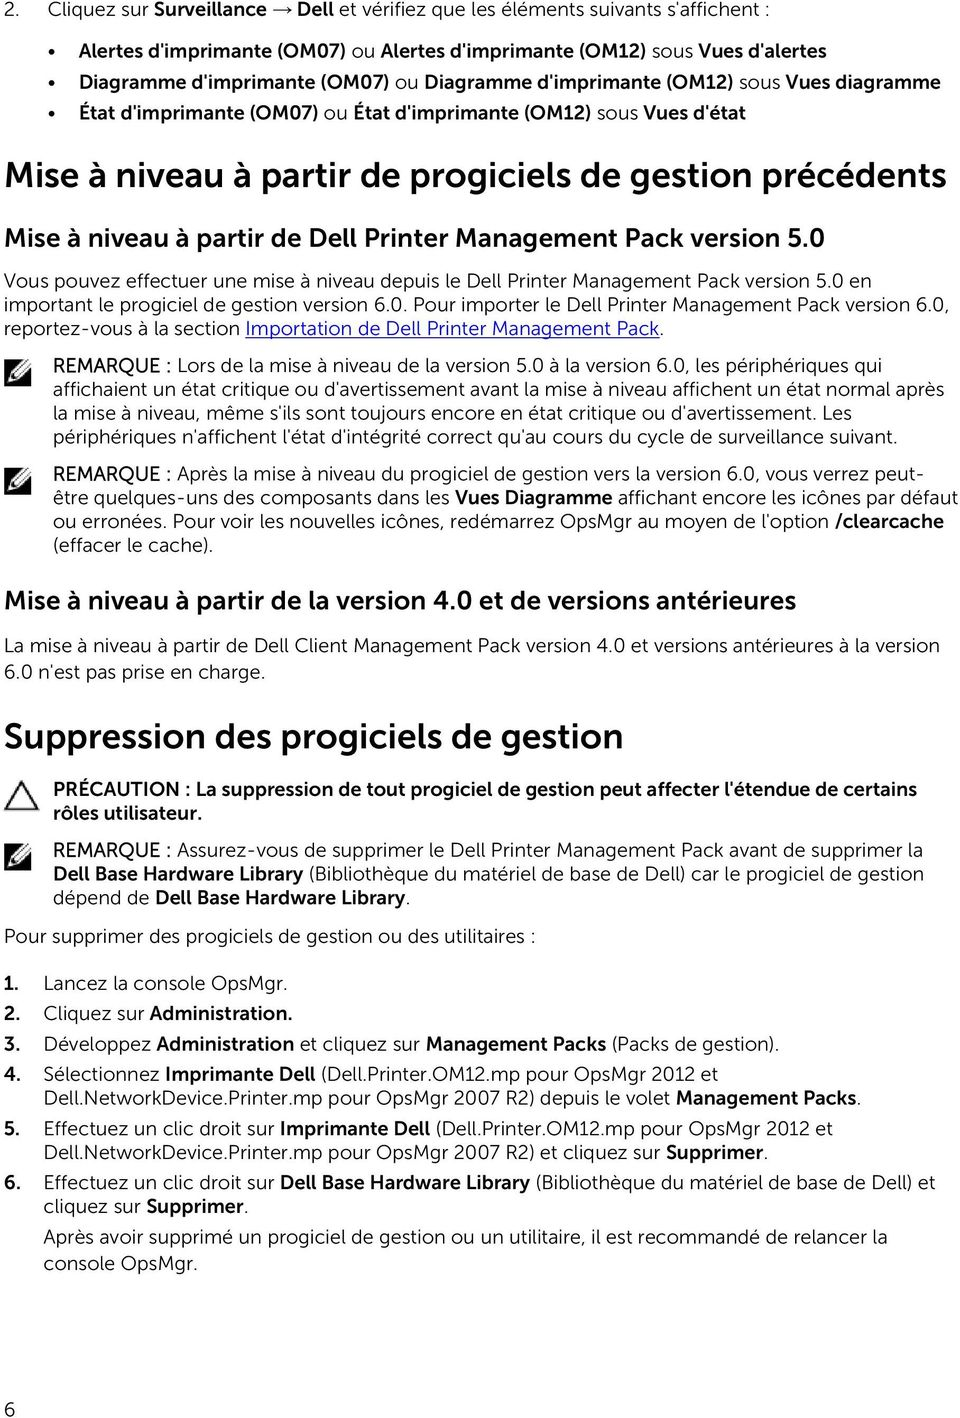 partir de Dell Printer Management Pack version 5.0 Vous pouvez effectuer une mise à niveau depuis le Dell Printer Management Pack version 5.0 en important le progiciel de gestion version 6.0. Pour importer le Dell Printer Management Pack version 6.